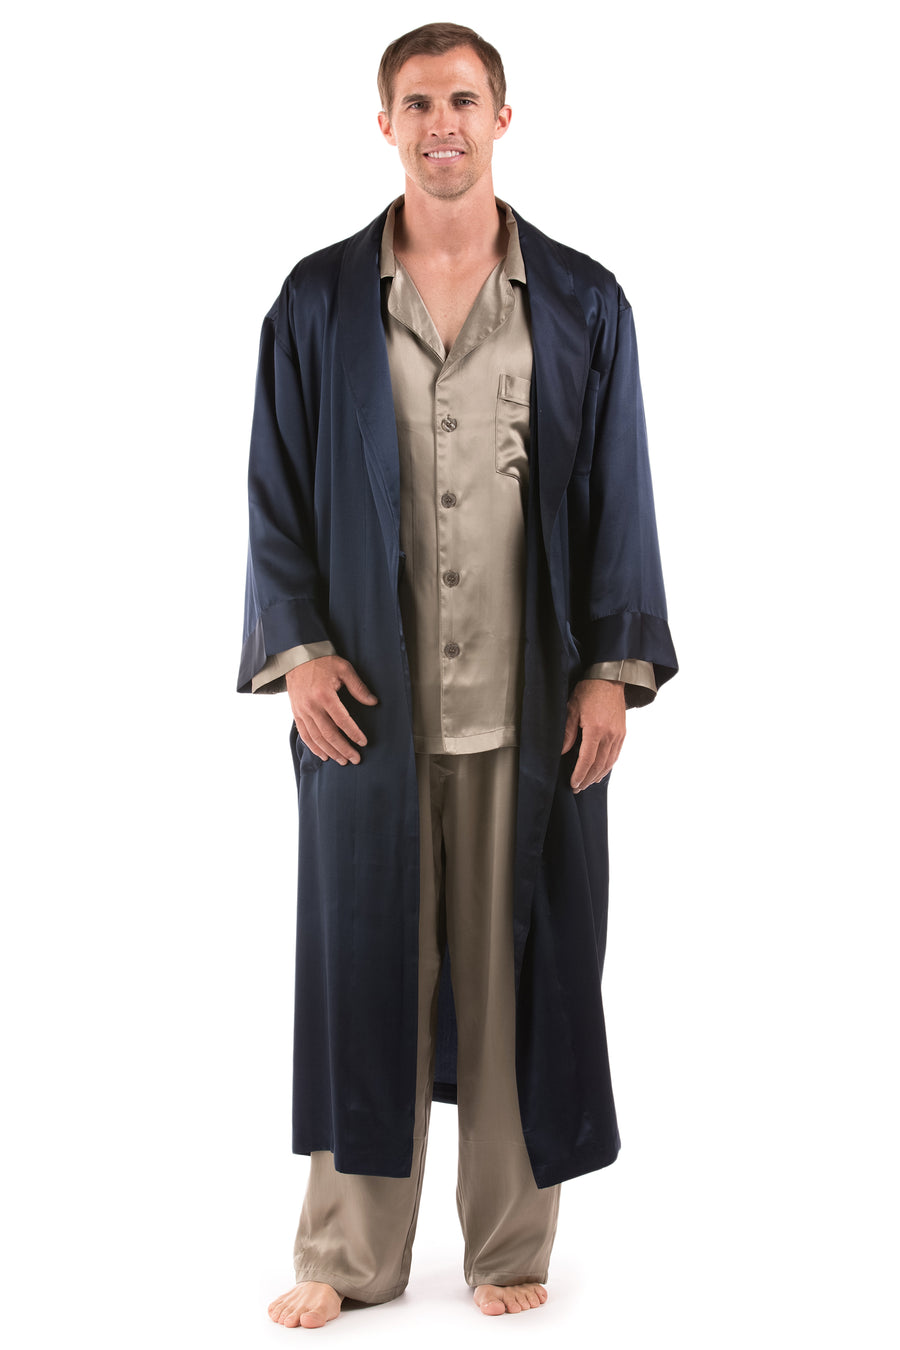 Blissful Buddha - Men's Silk Hand Painted Robe - TexereSilk